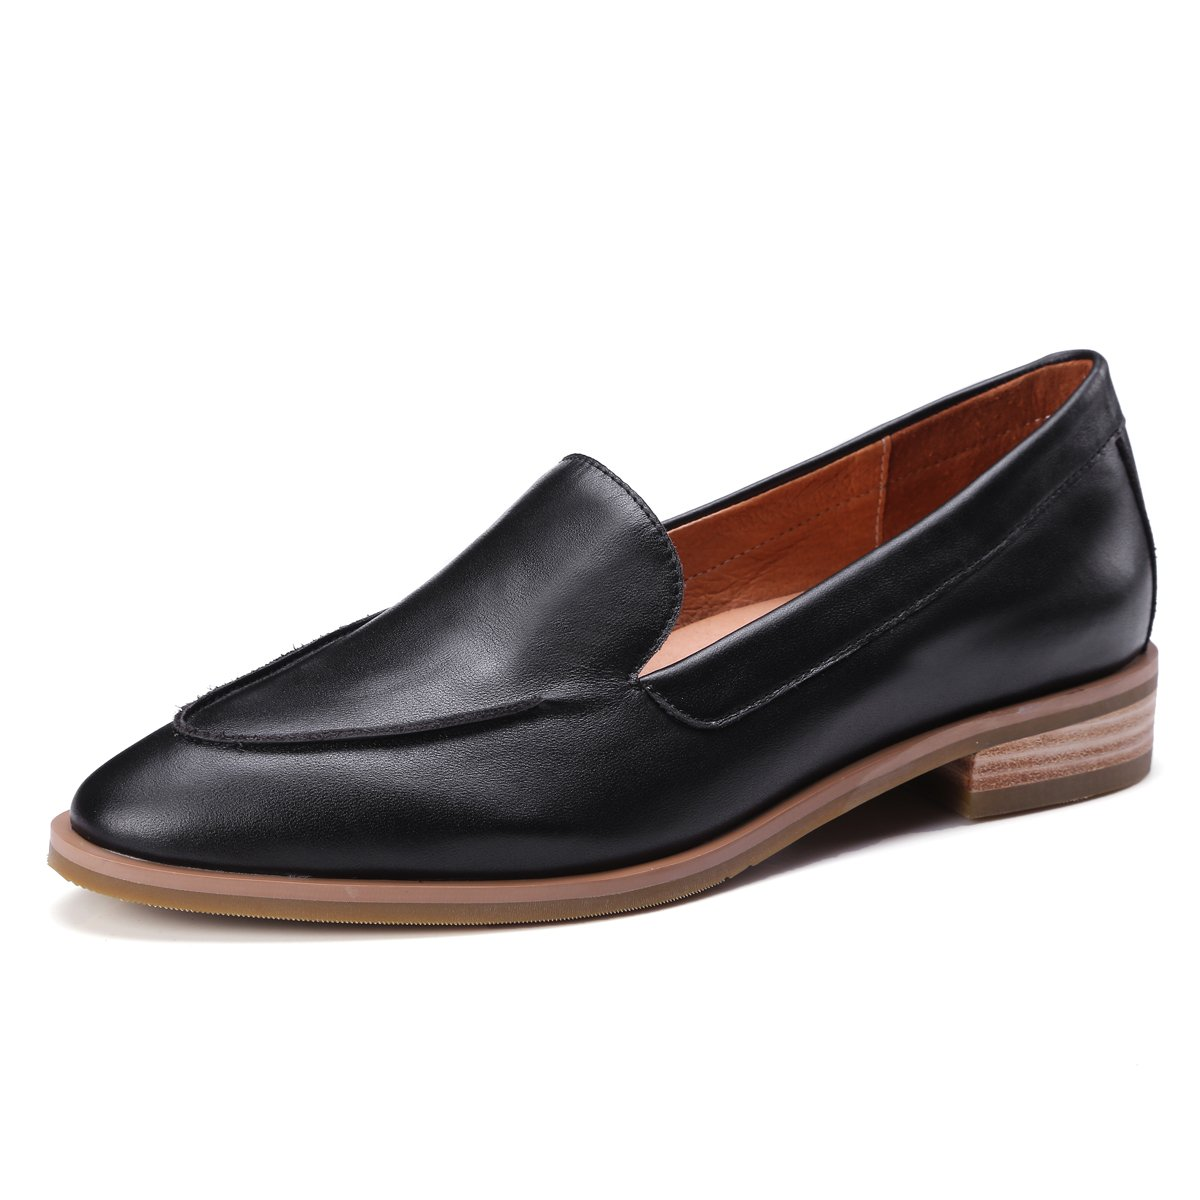 ONEENO Loafers for Women Comfort Casual Slip on Low Heel Cowhide Leather Flat Shoes Black Size 9 US